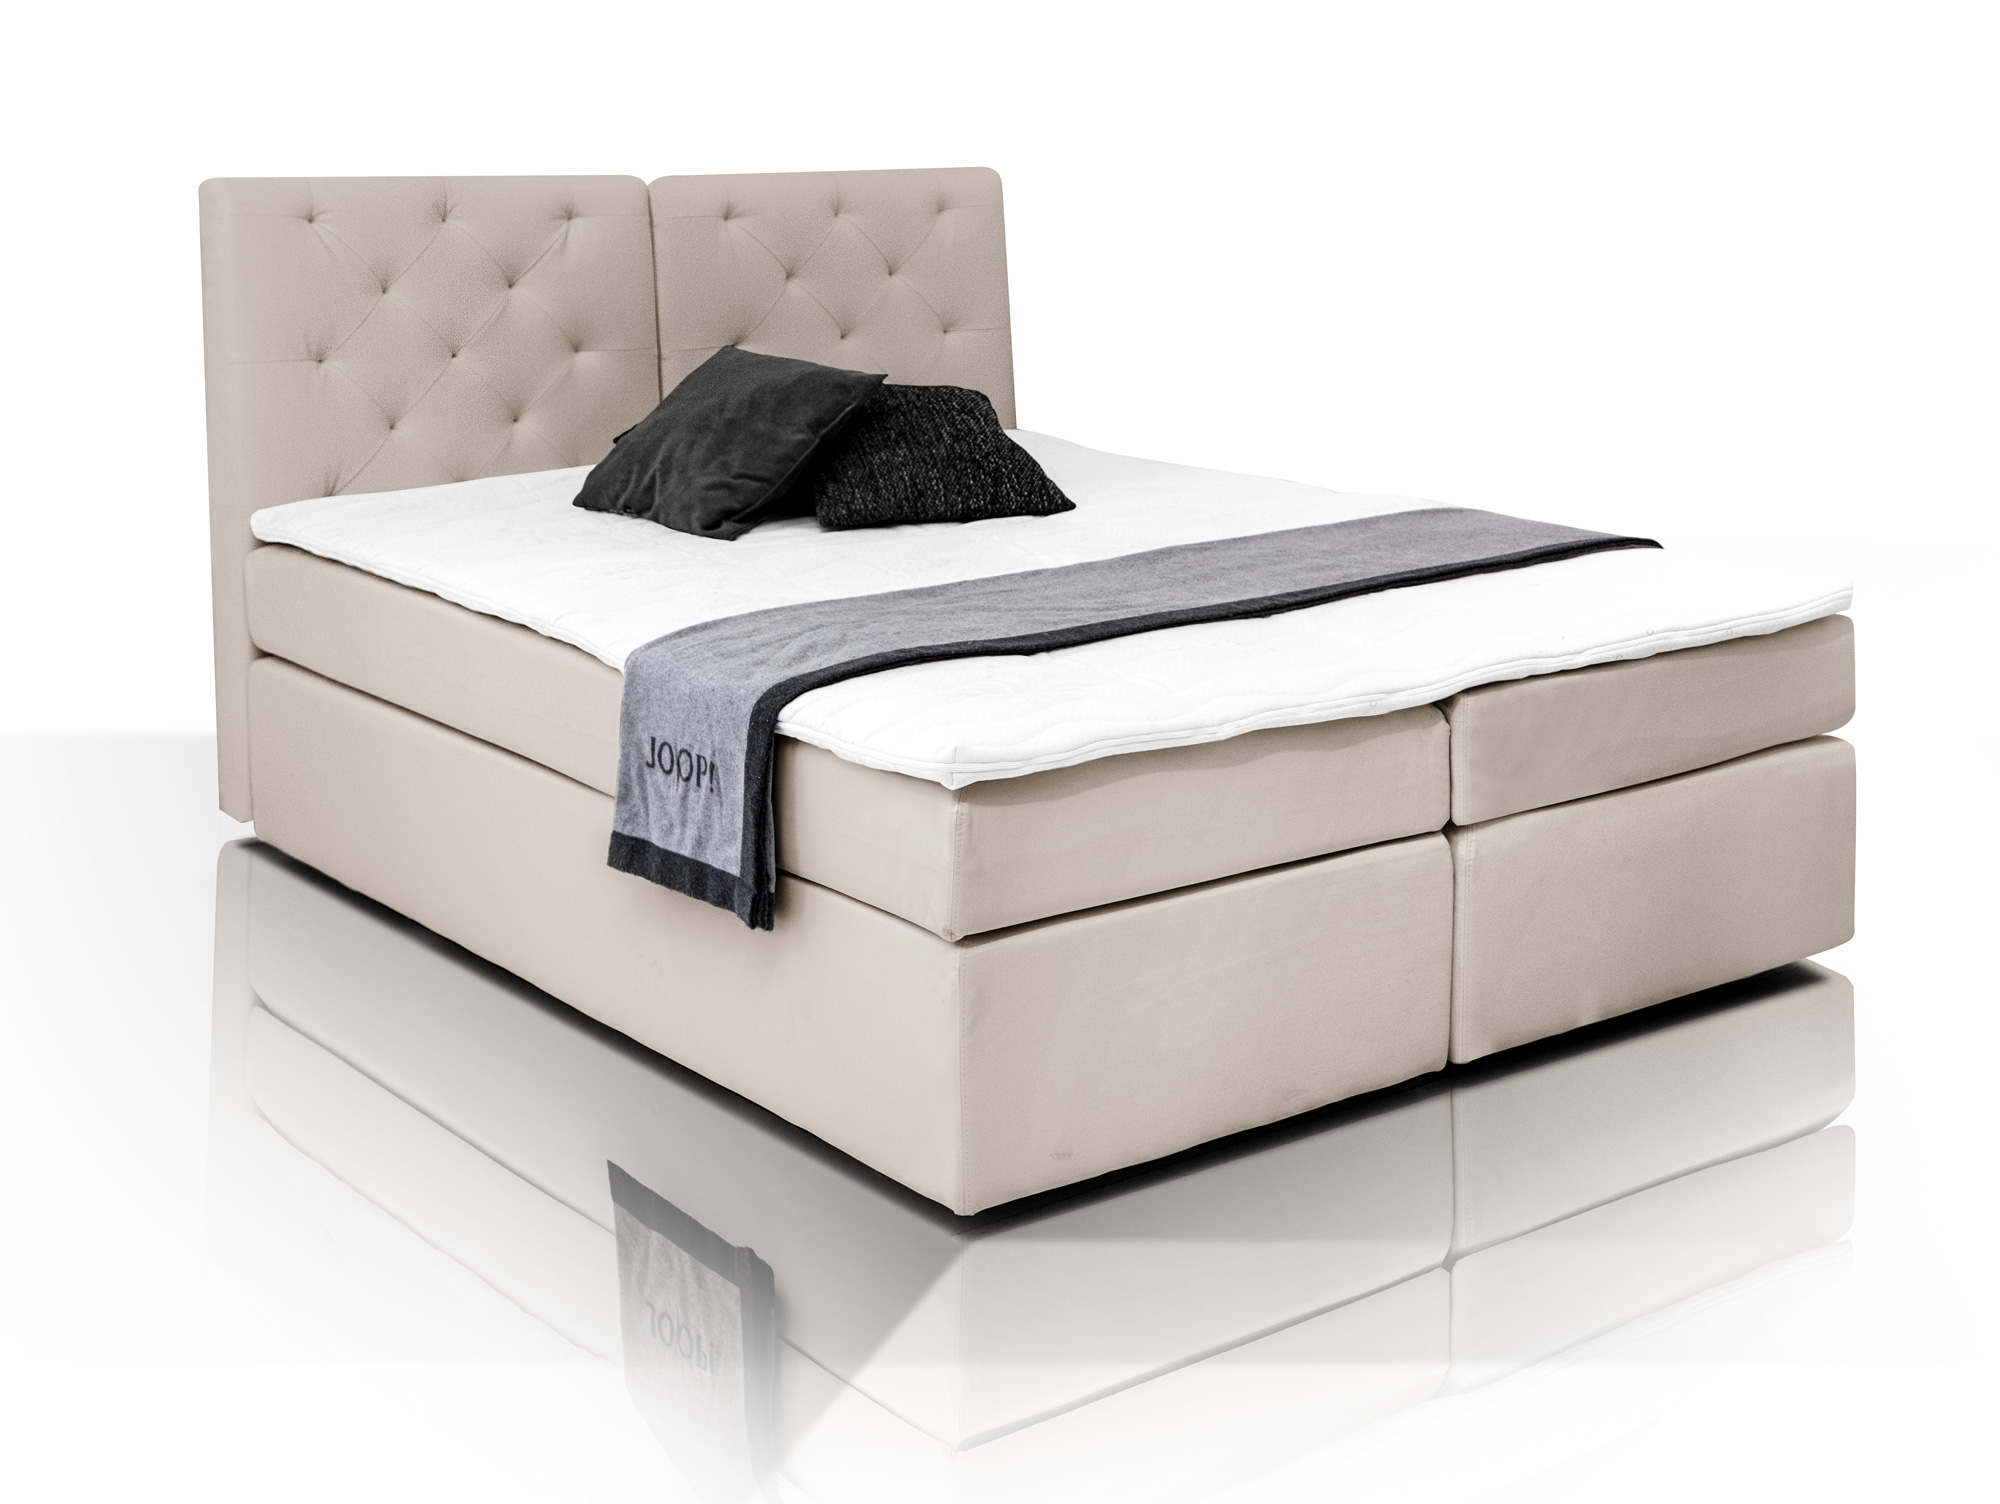 boxspringbett mit schmutzabweisendem bezug beige h3 160x200 doppelbett 7 zonen 4251215237521 ebay. Black Bedroom Furniture Sets. Home Design Ideas